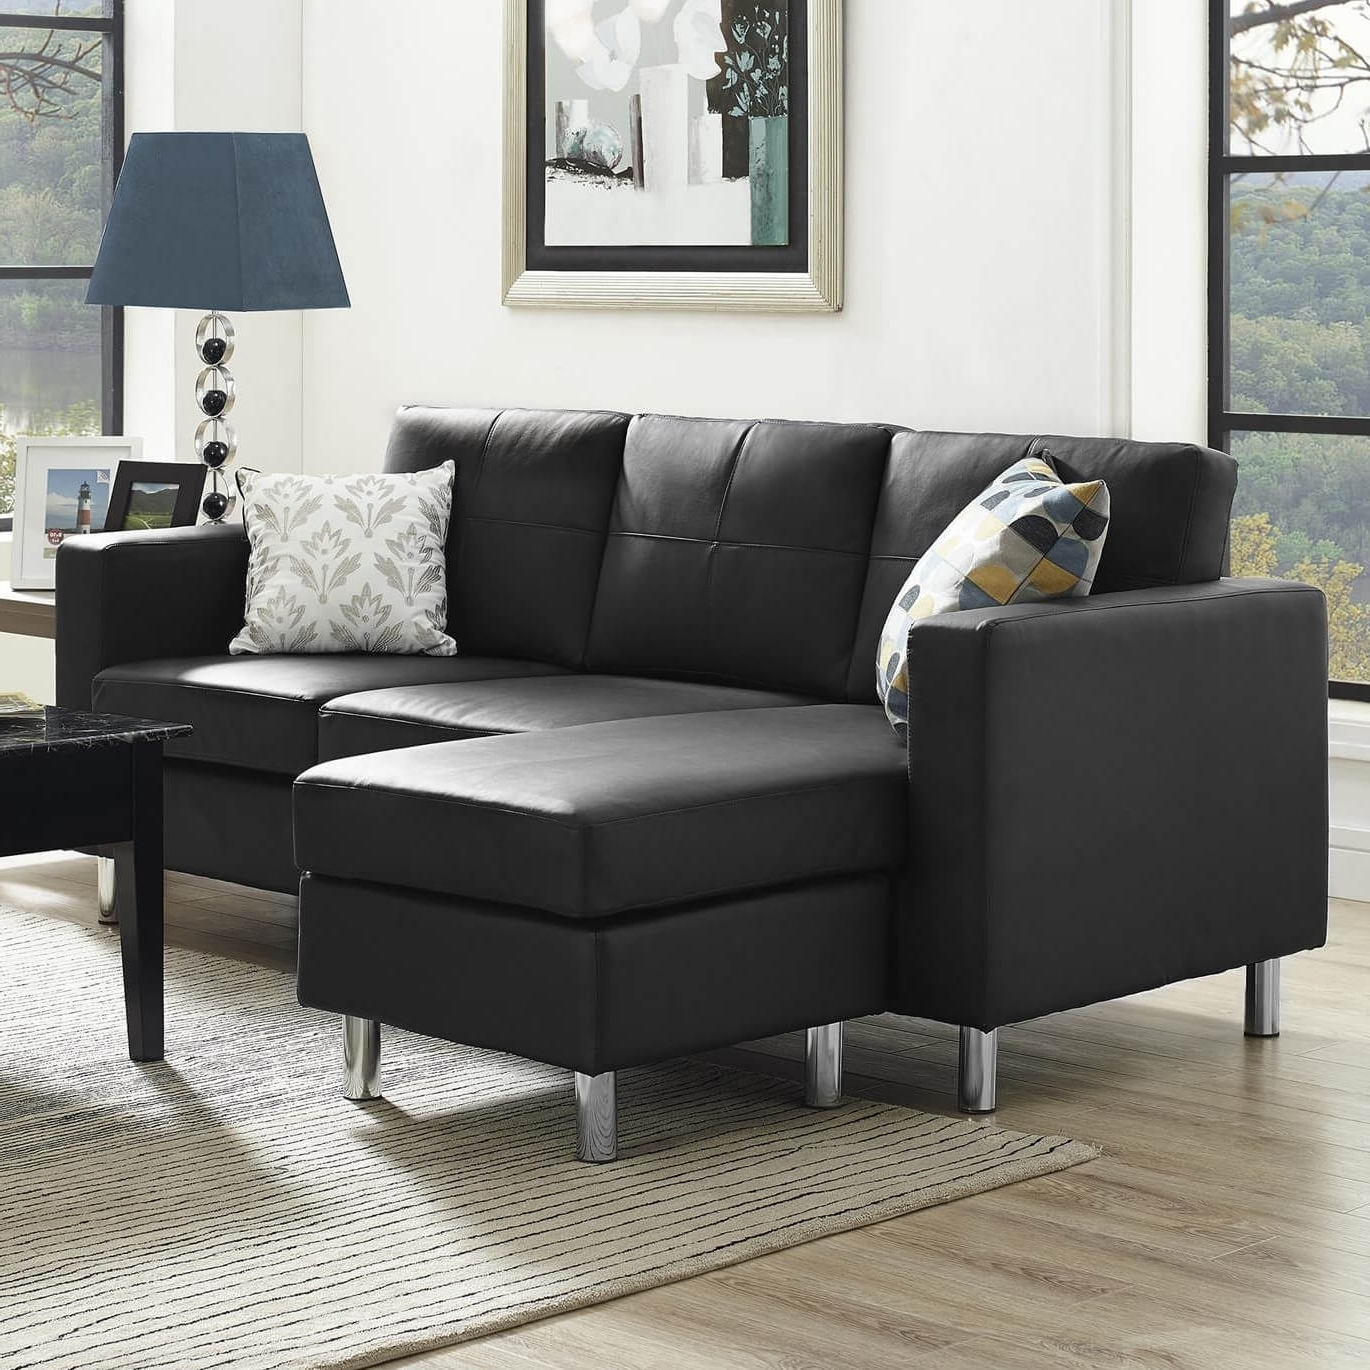 40 Cheap Sectional Sofas Under $500 For 2018 Inside Best And Newest Canada Sectional Sofas For Small Spaces (View 1 of 15)